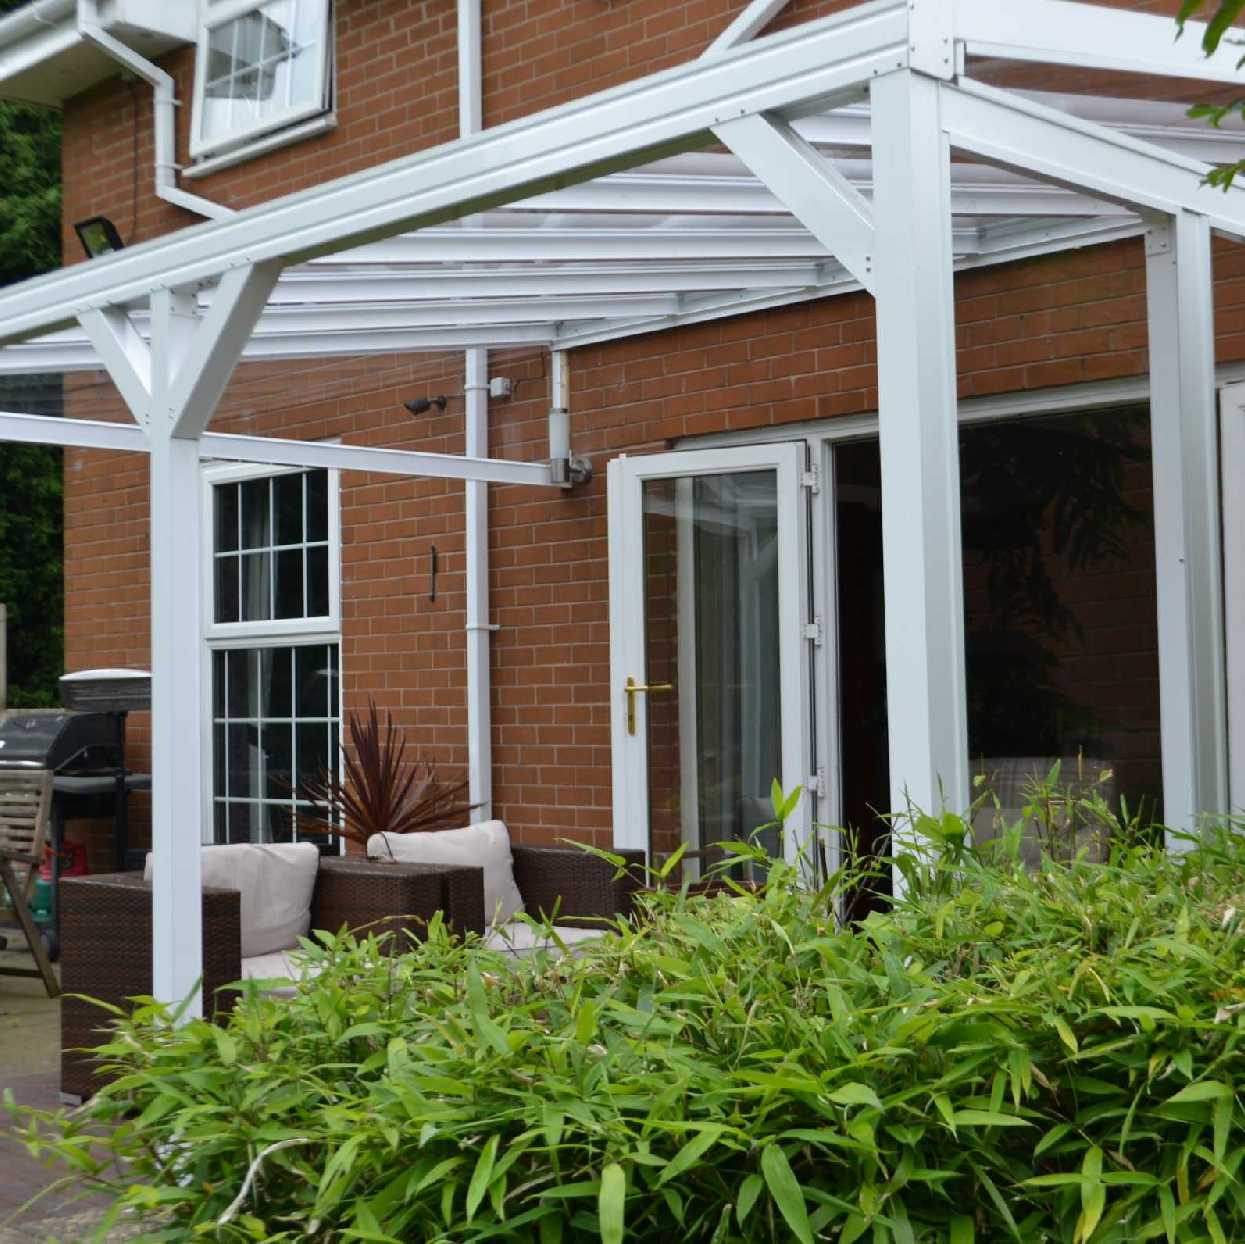 Omega Smart White Lean-To Canopy with 6mm Glass Clear Plate Polycarbonate Glazing - 2.8m (W) x 2.0m (P), (2) Supporting Posts from Omega Build